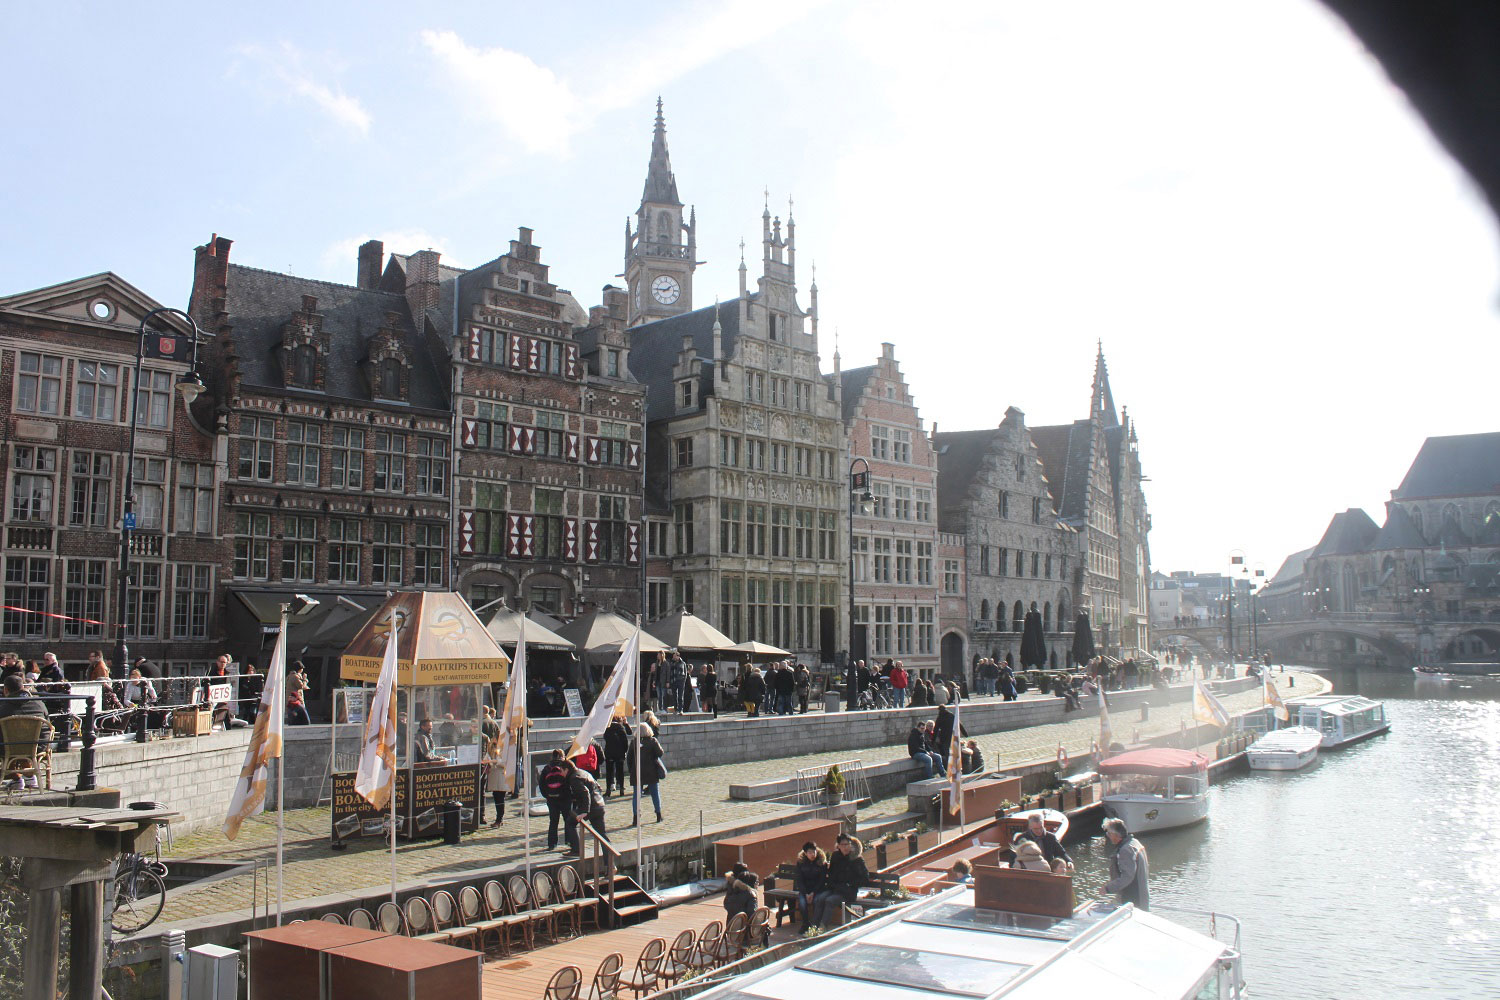 The main canal in Ghent